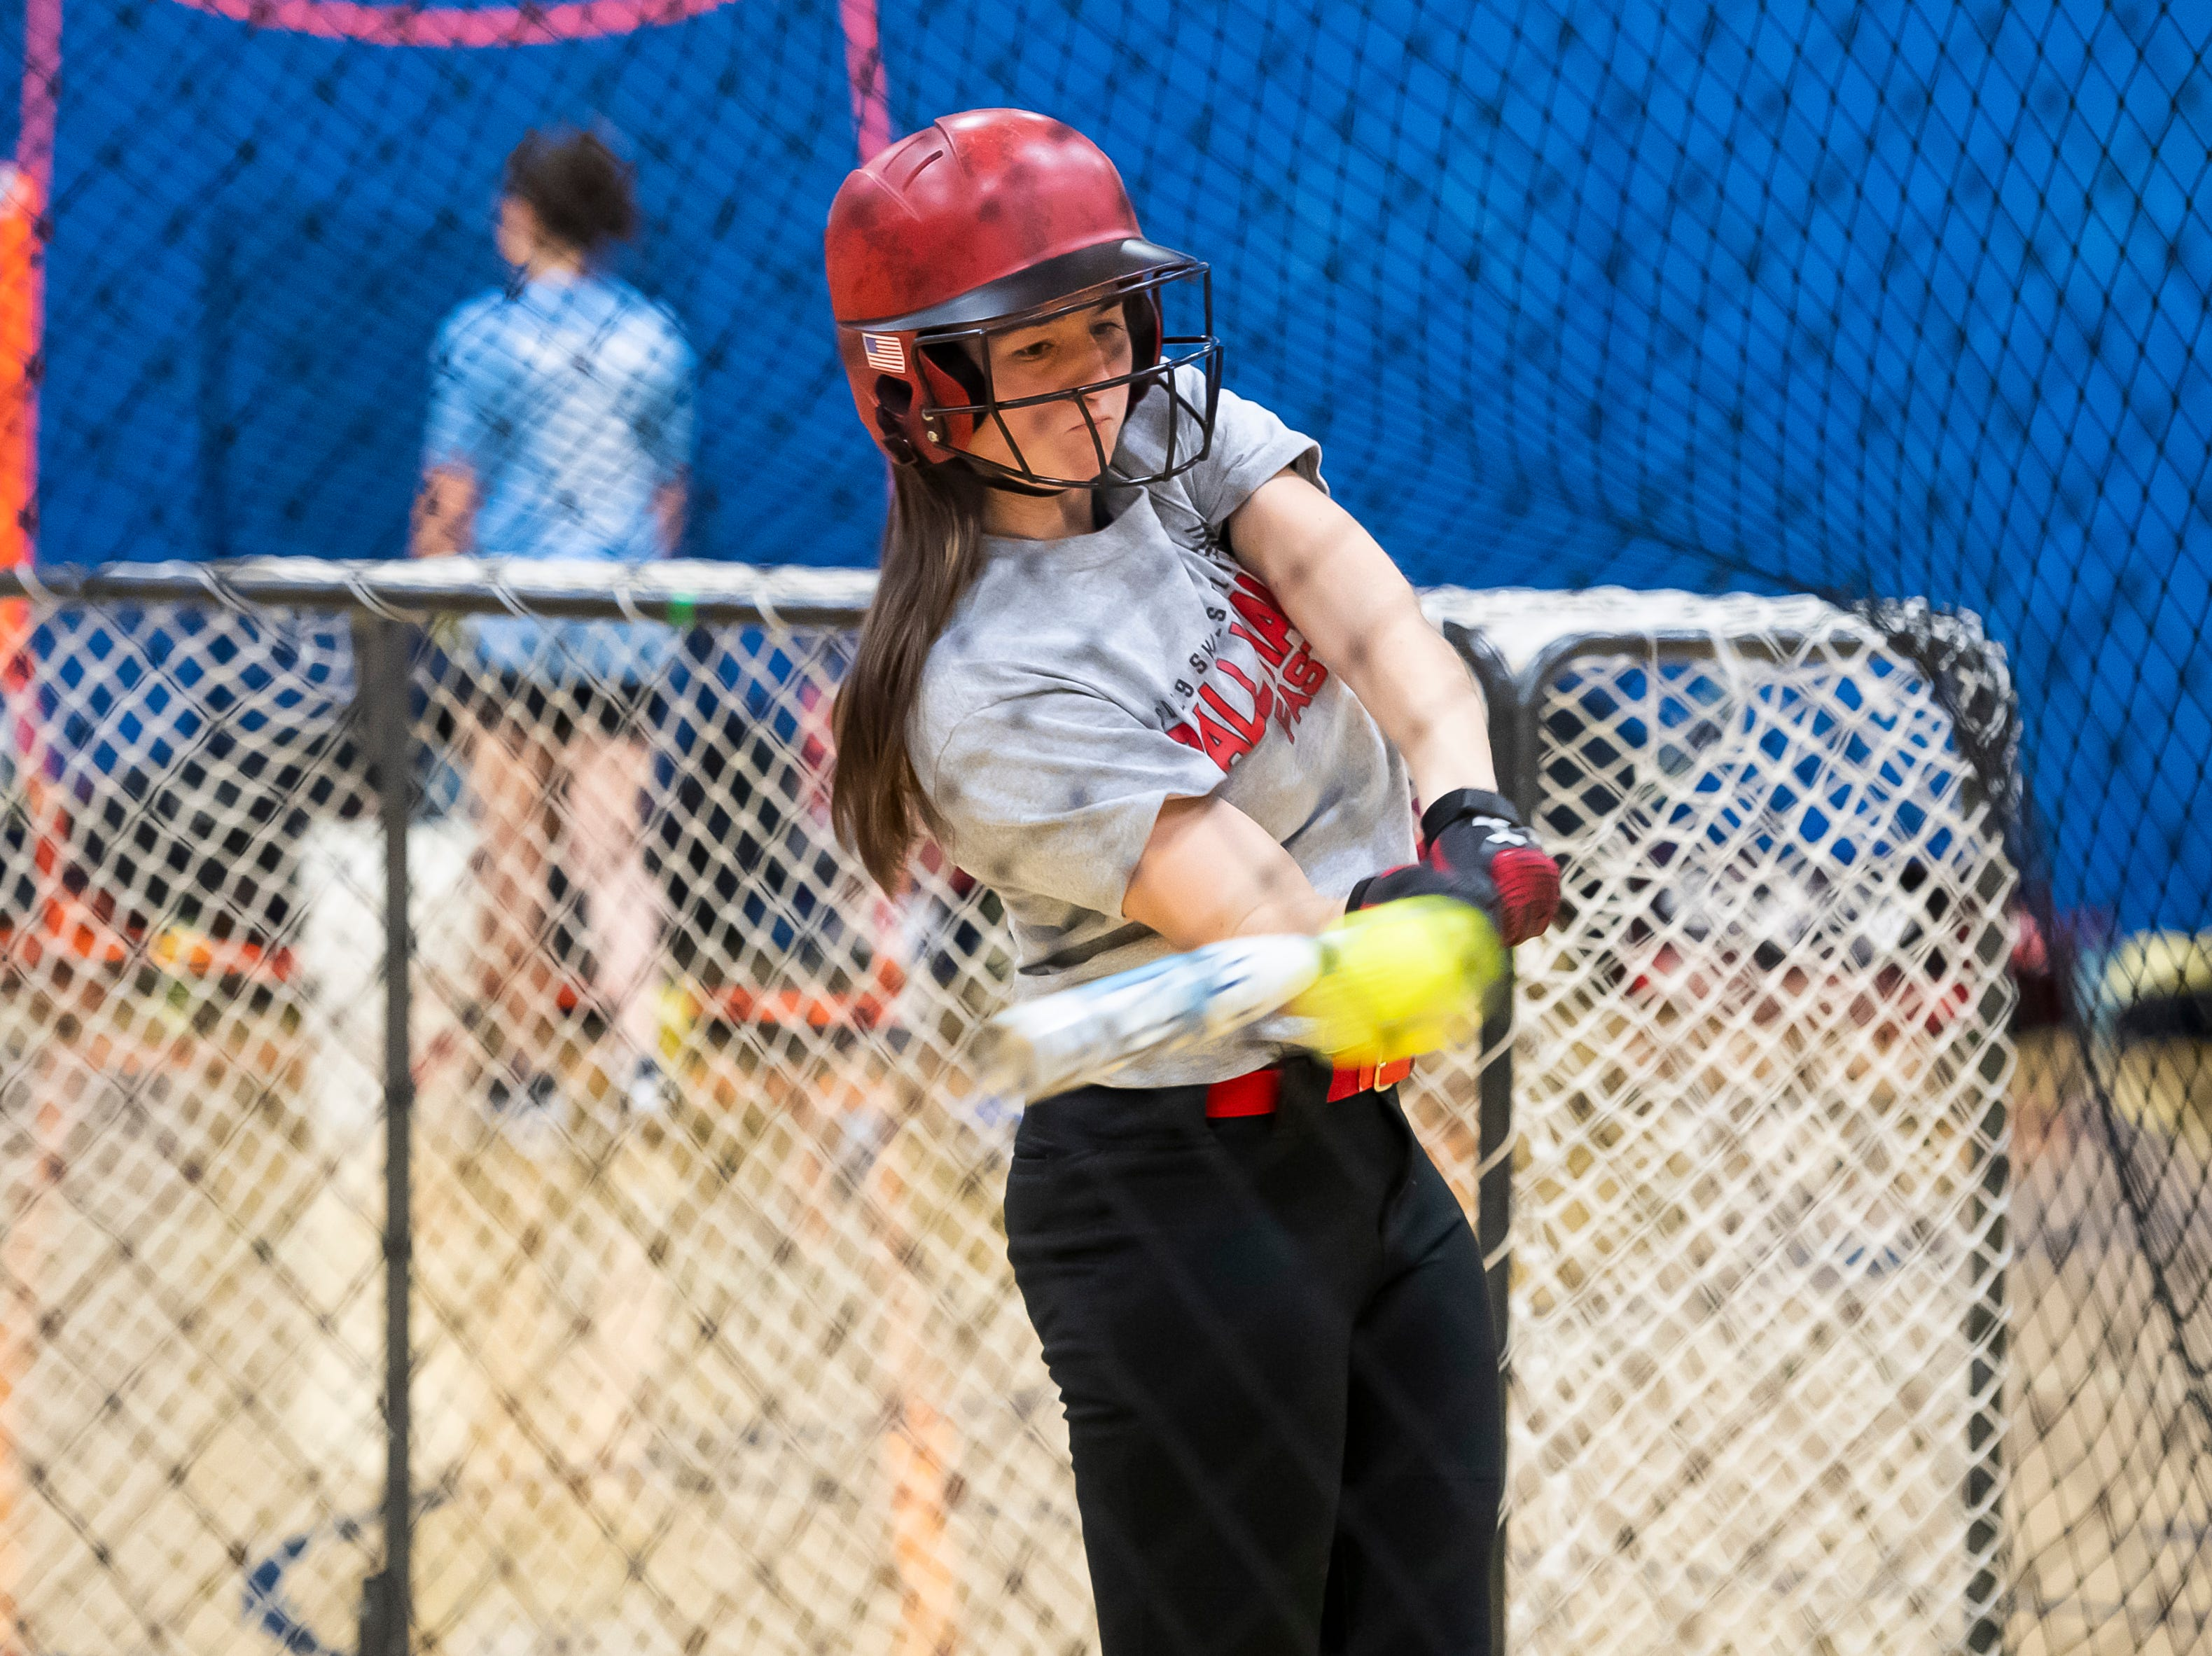 Littlestown's Amaya Bowman connects with a pitch inside the batting cage on the first day of softball practice in the Littlestown High School gym Monday, March 4, 2019.